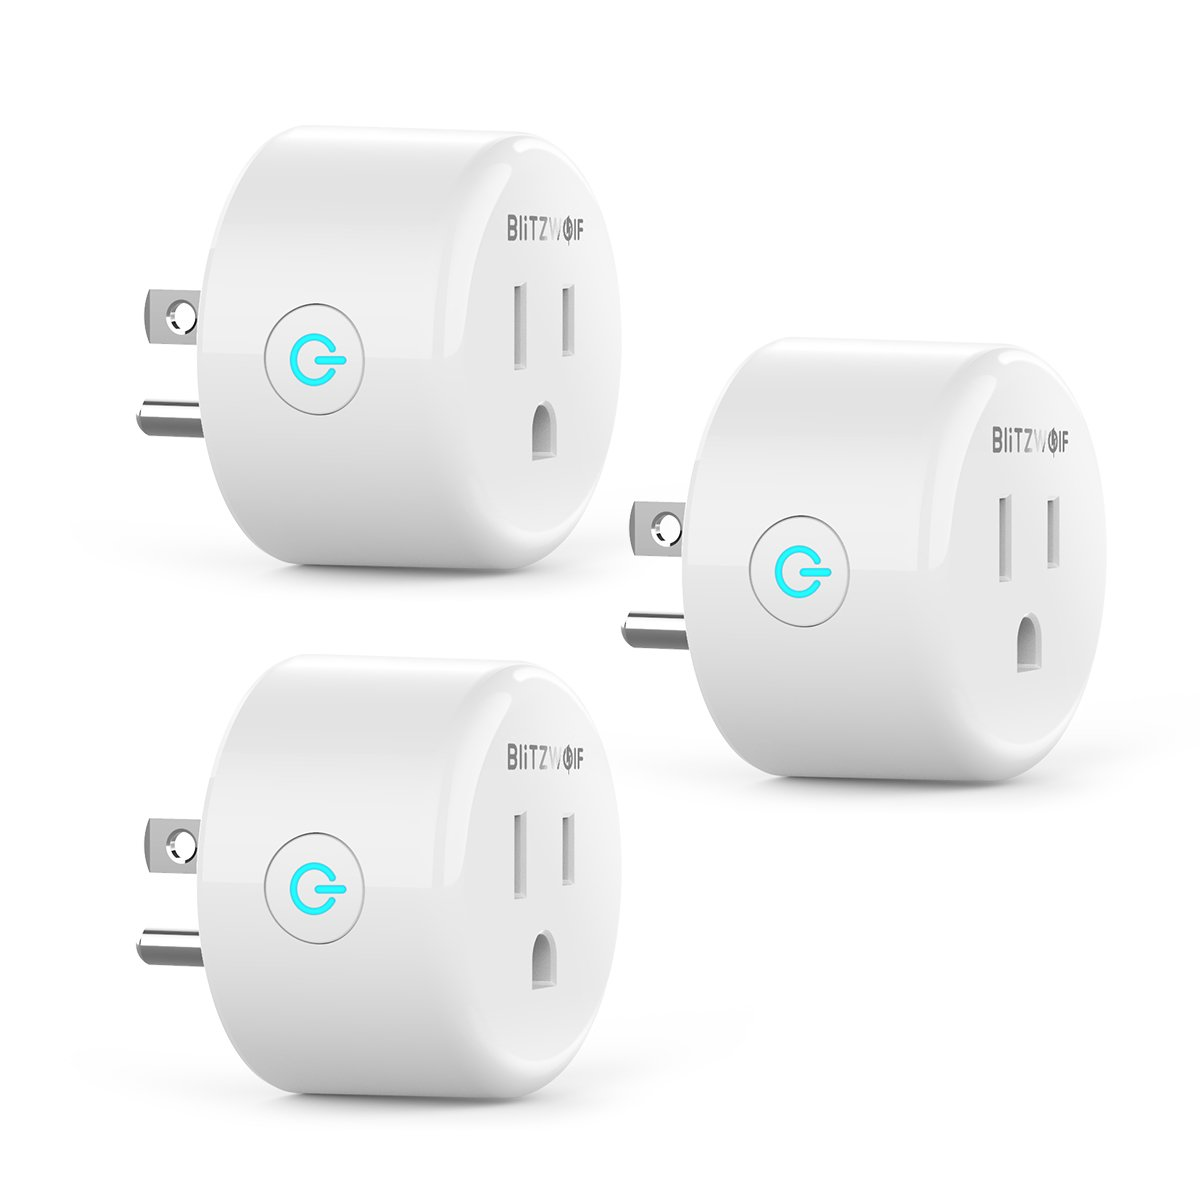 Smart Plug Compatible with Alexa, Google Home, BlitzWolf Mini Outlet Wifi Smart Socket with No Hub Required, Timing, Control Your Devices from Anywhere, ETL Listed, 3-Pack